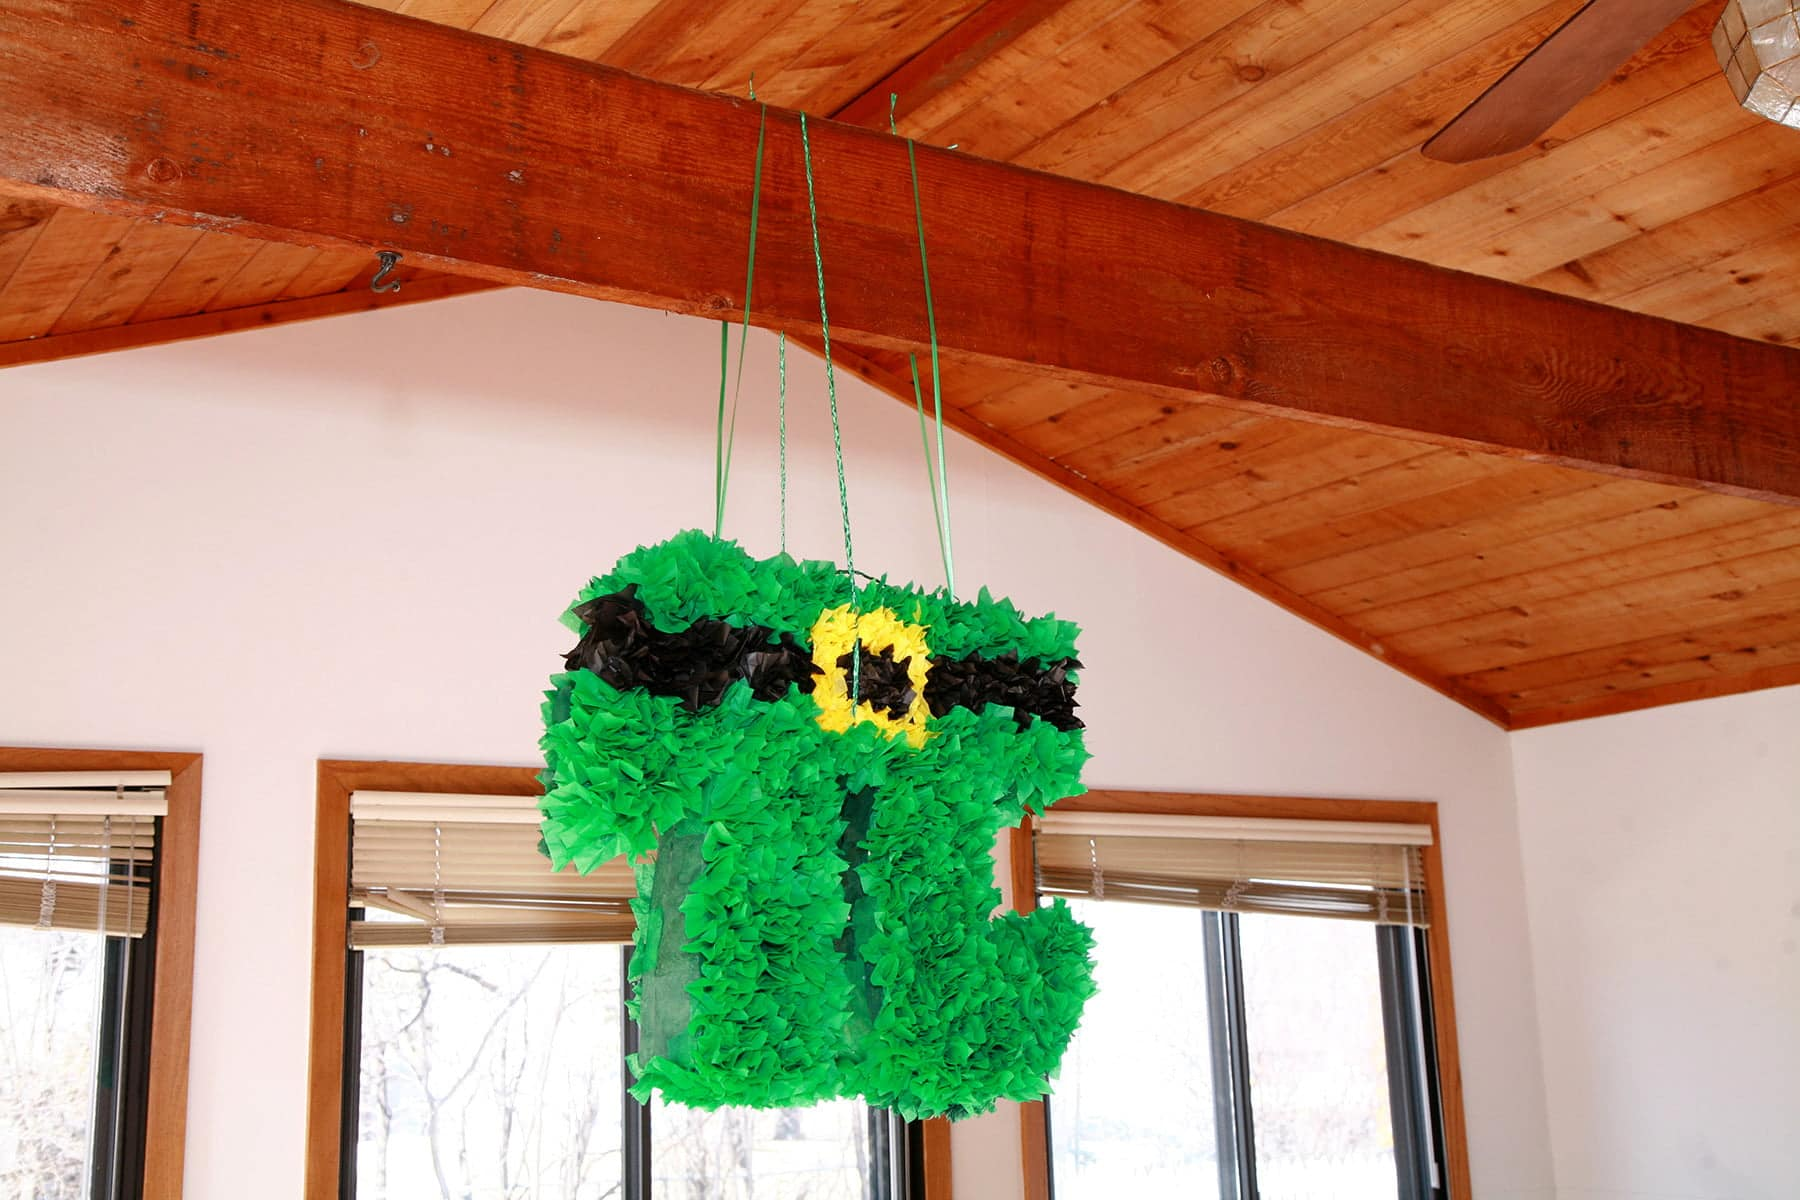 A bright green pi symbol shaped pinata is suspended from a wooden rafter.